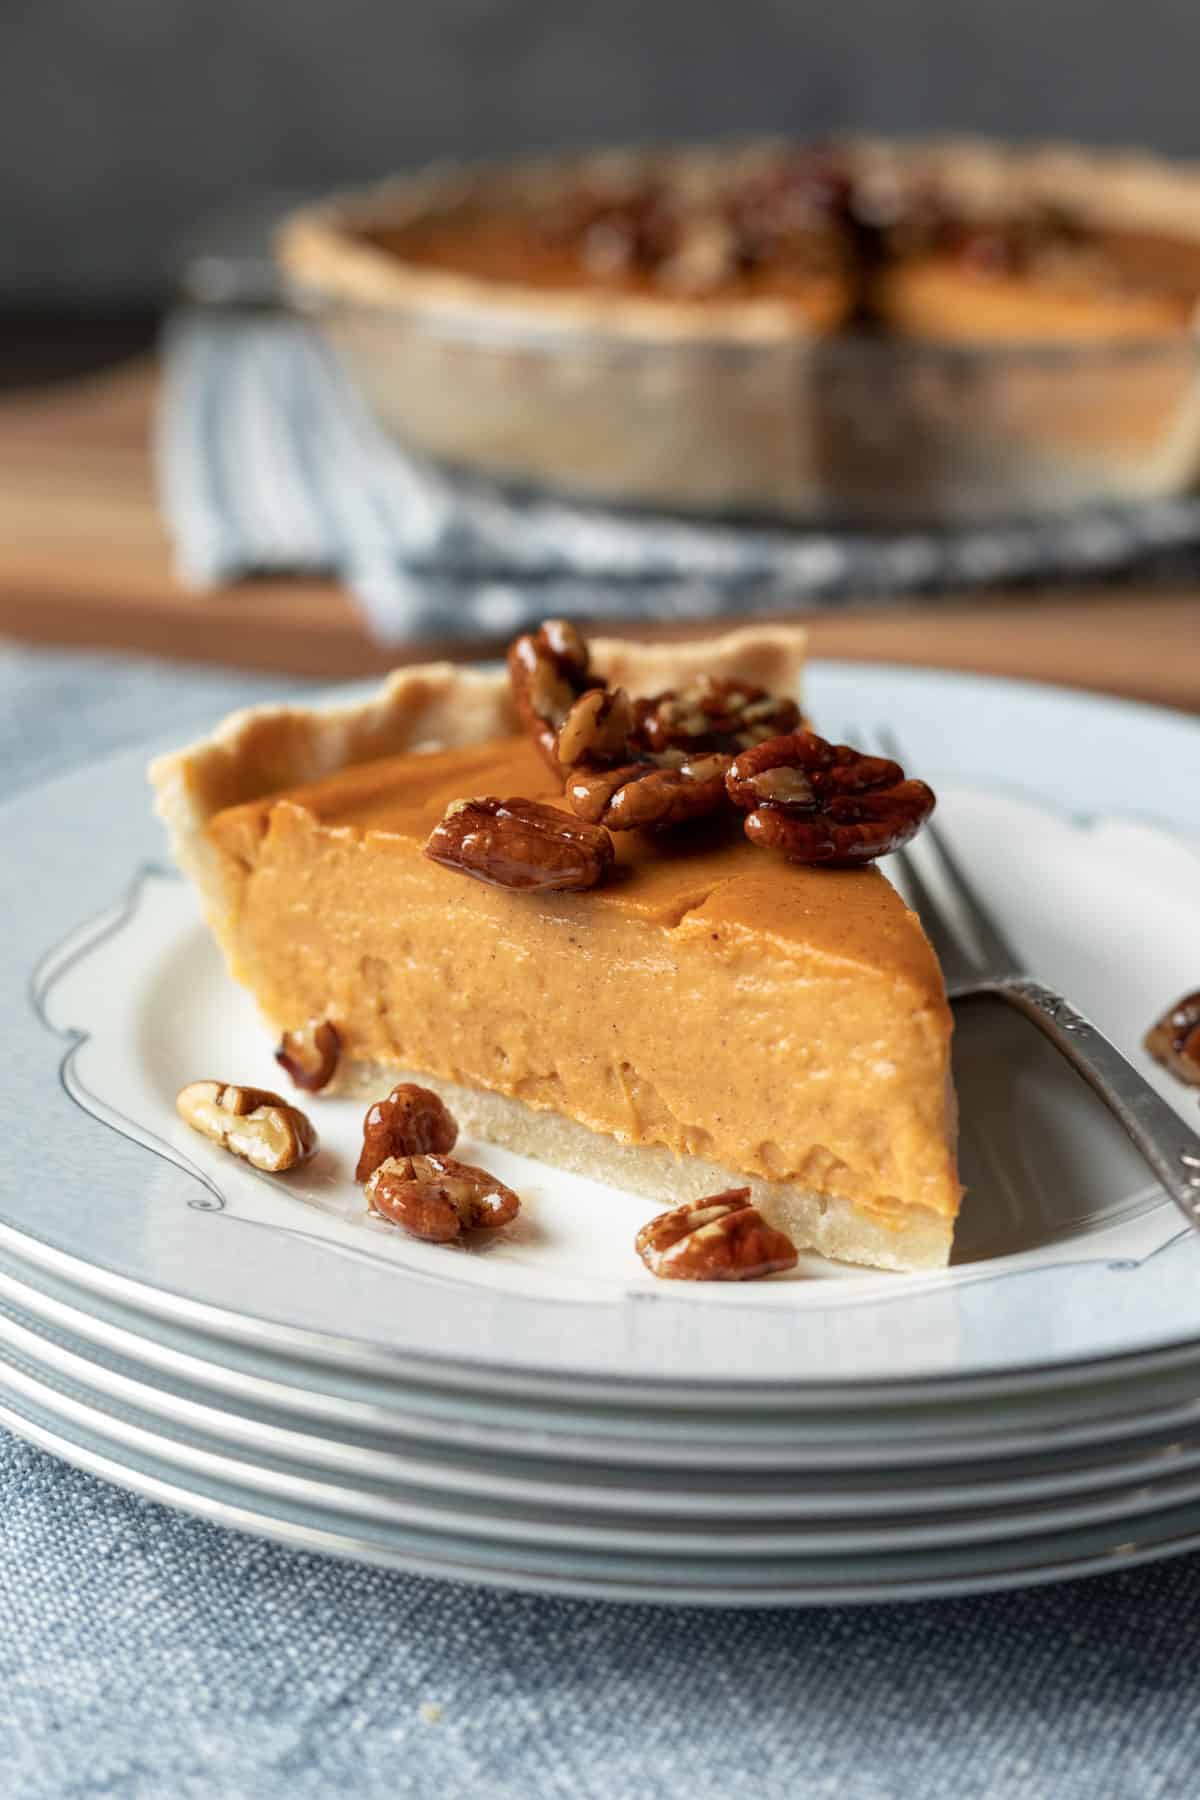 side view of a slice of pie showing creamy sweet potato filling.